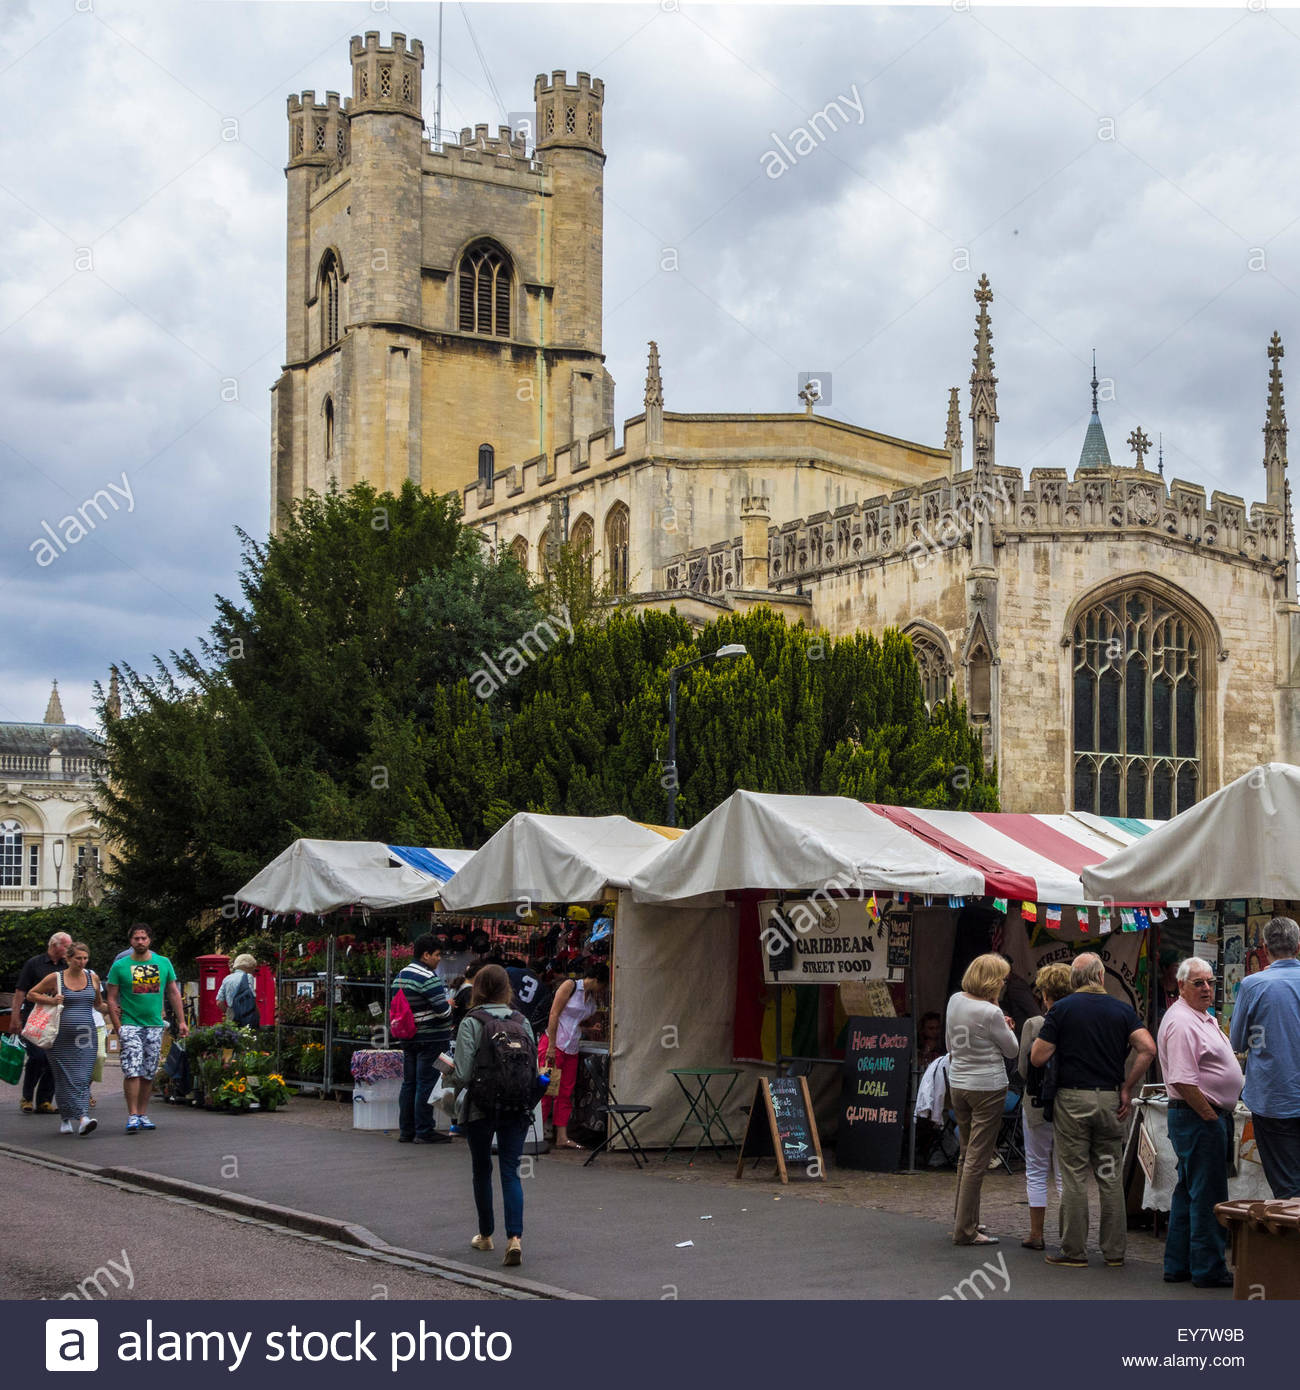 The market and Great St Mary's church, Cambridge - Stock Image